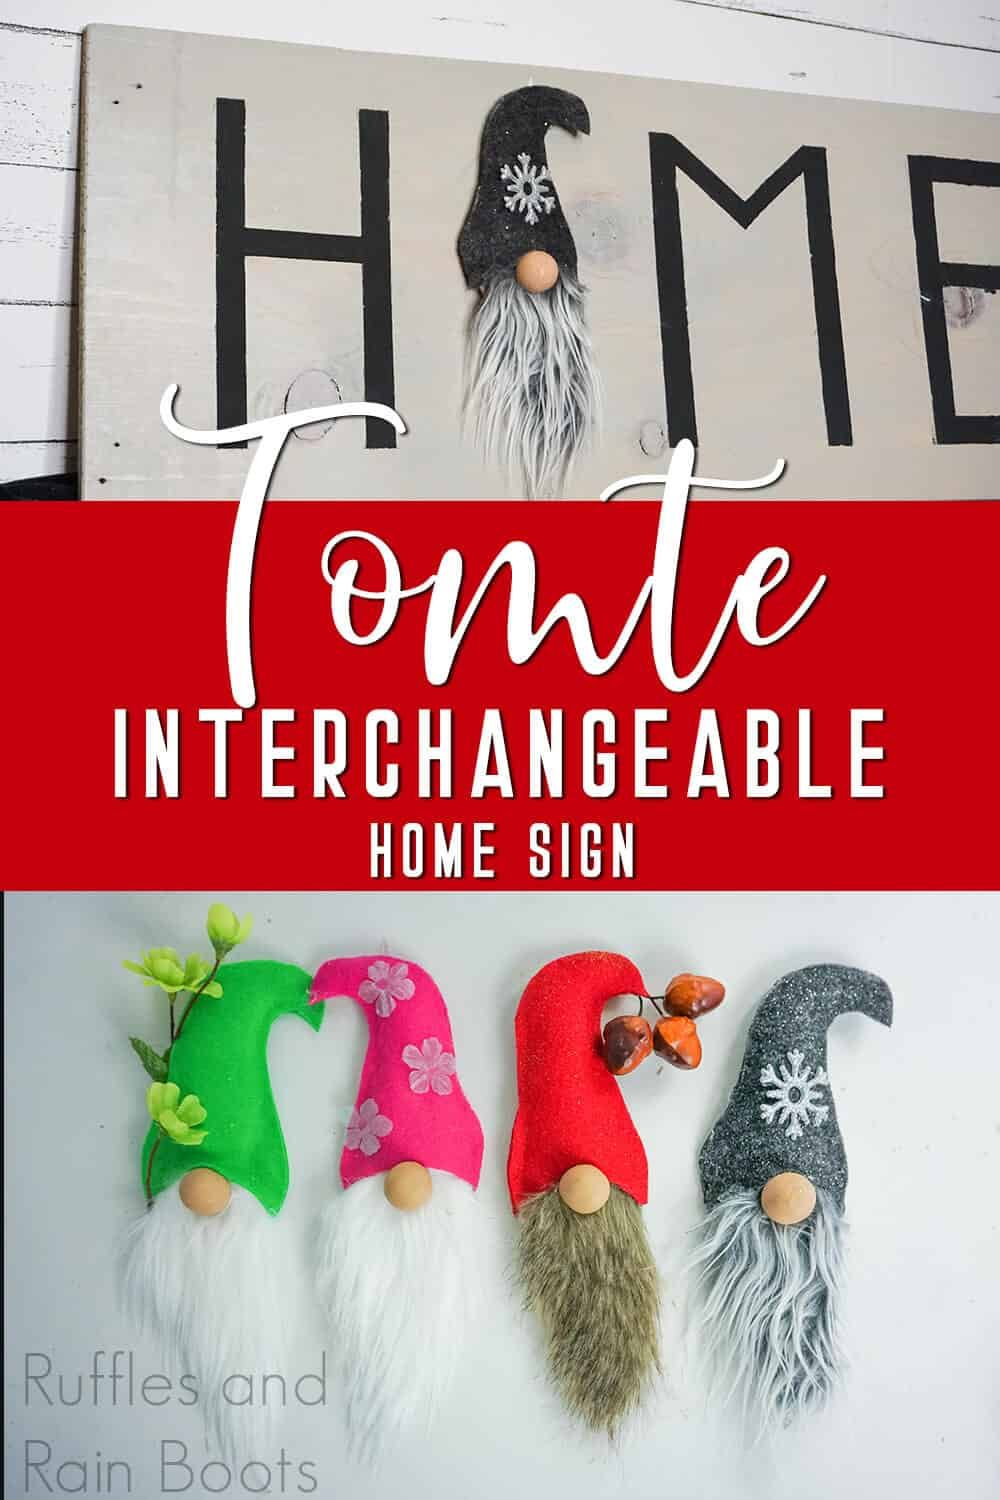 Make this Awesome Home Gnome Interchangeable Seasonal Sign ...